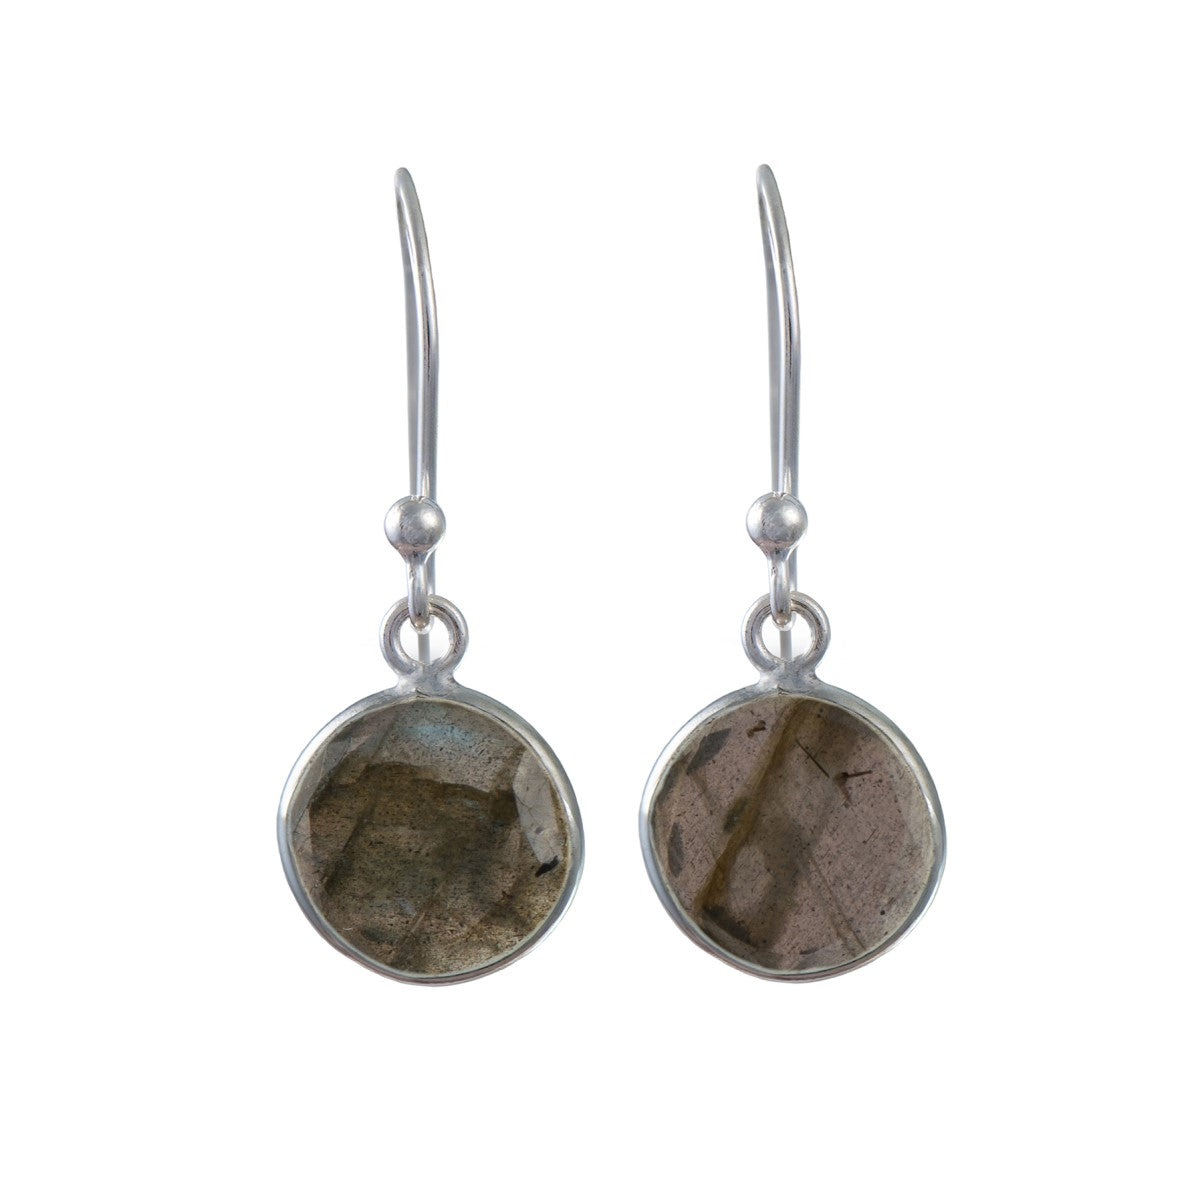 Labradorite Gemstone Earrings in Sterling Silver - Round